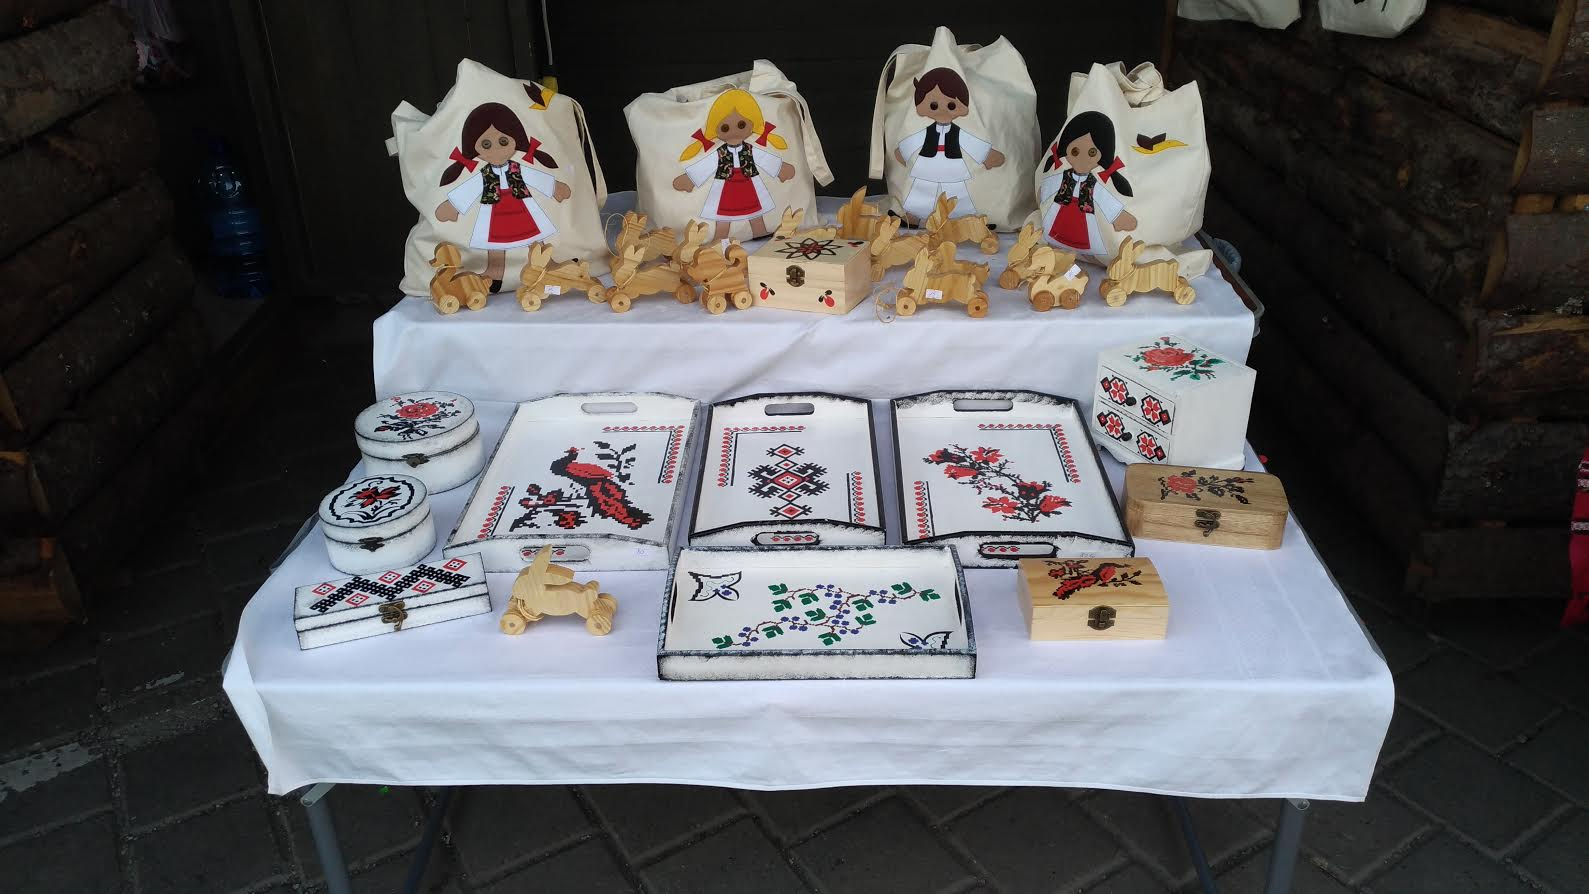 Easter Market in Bucharest, Romania - various objects decorated with traditional motifs